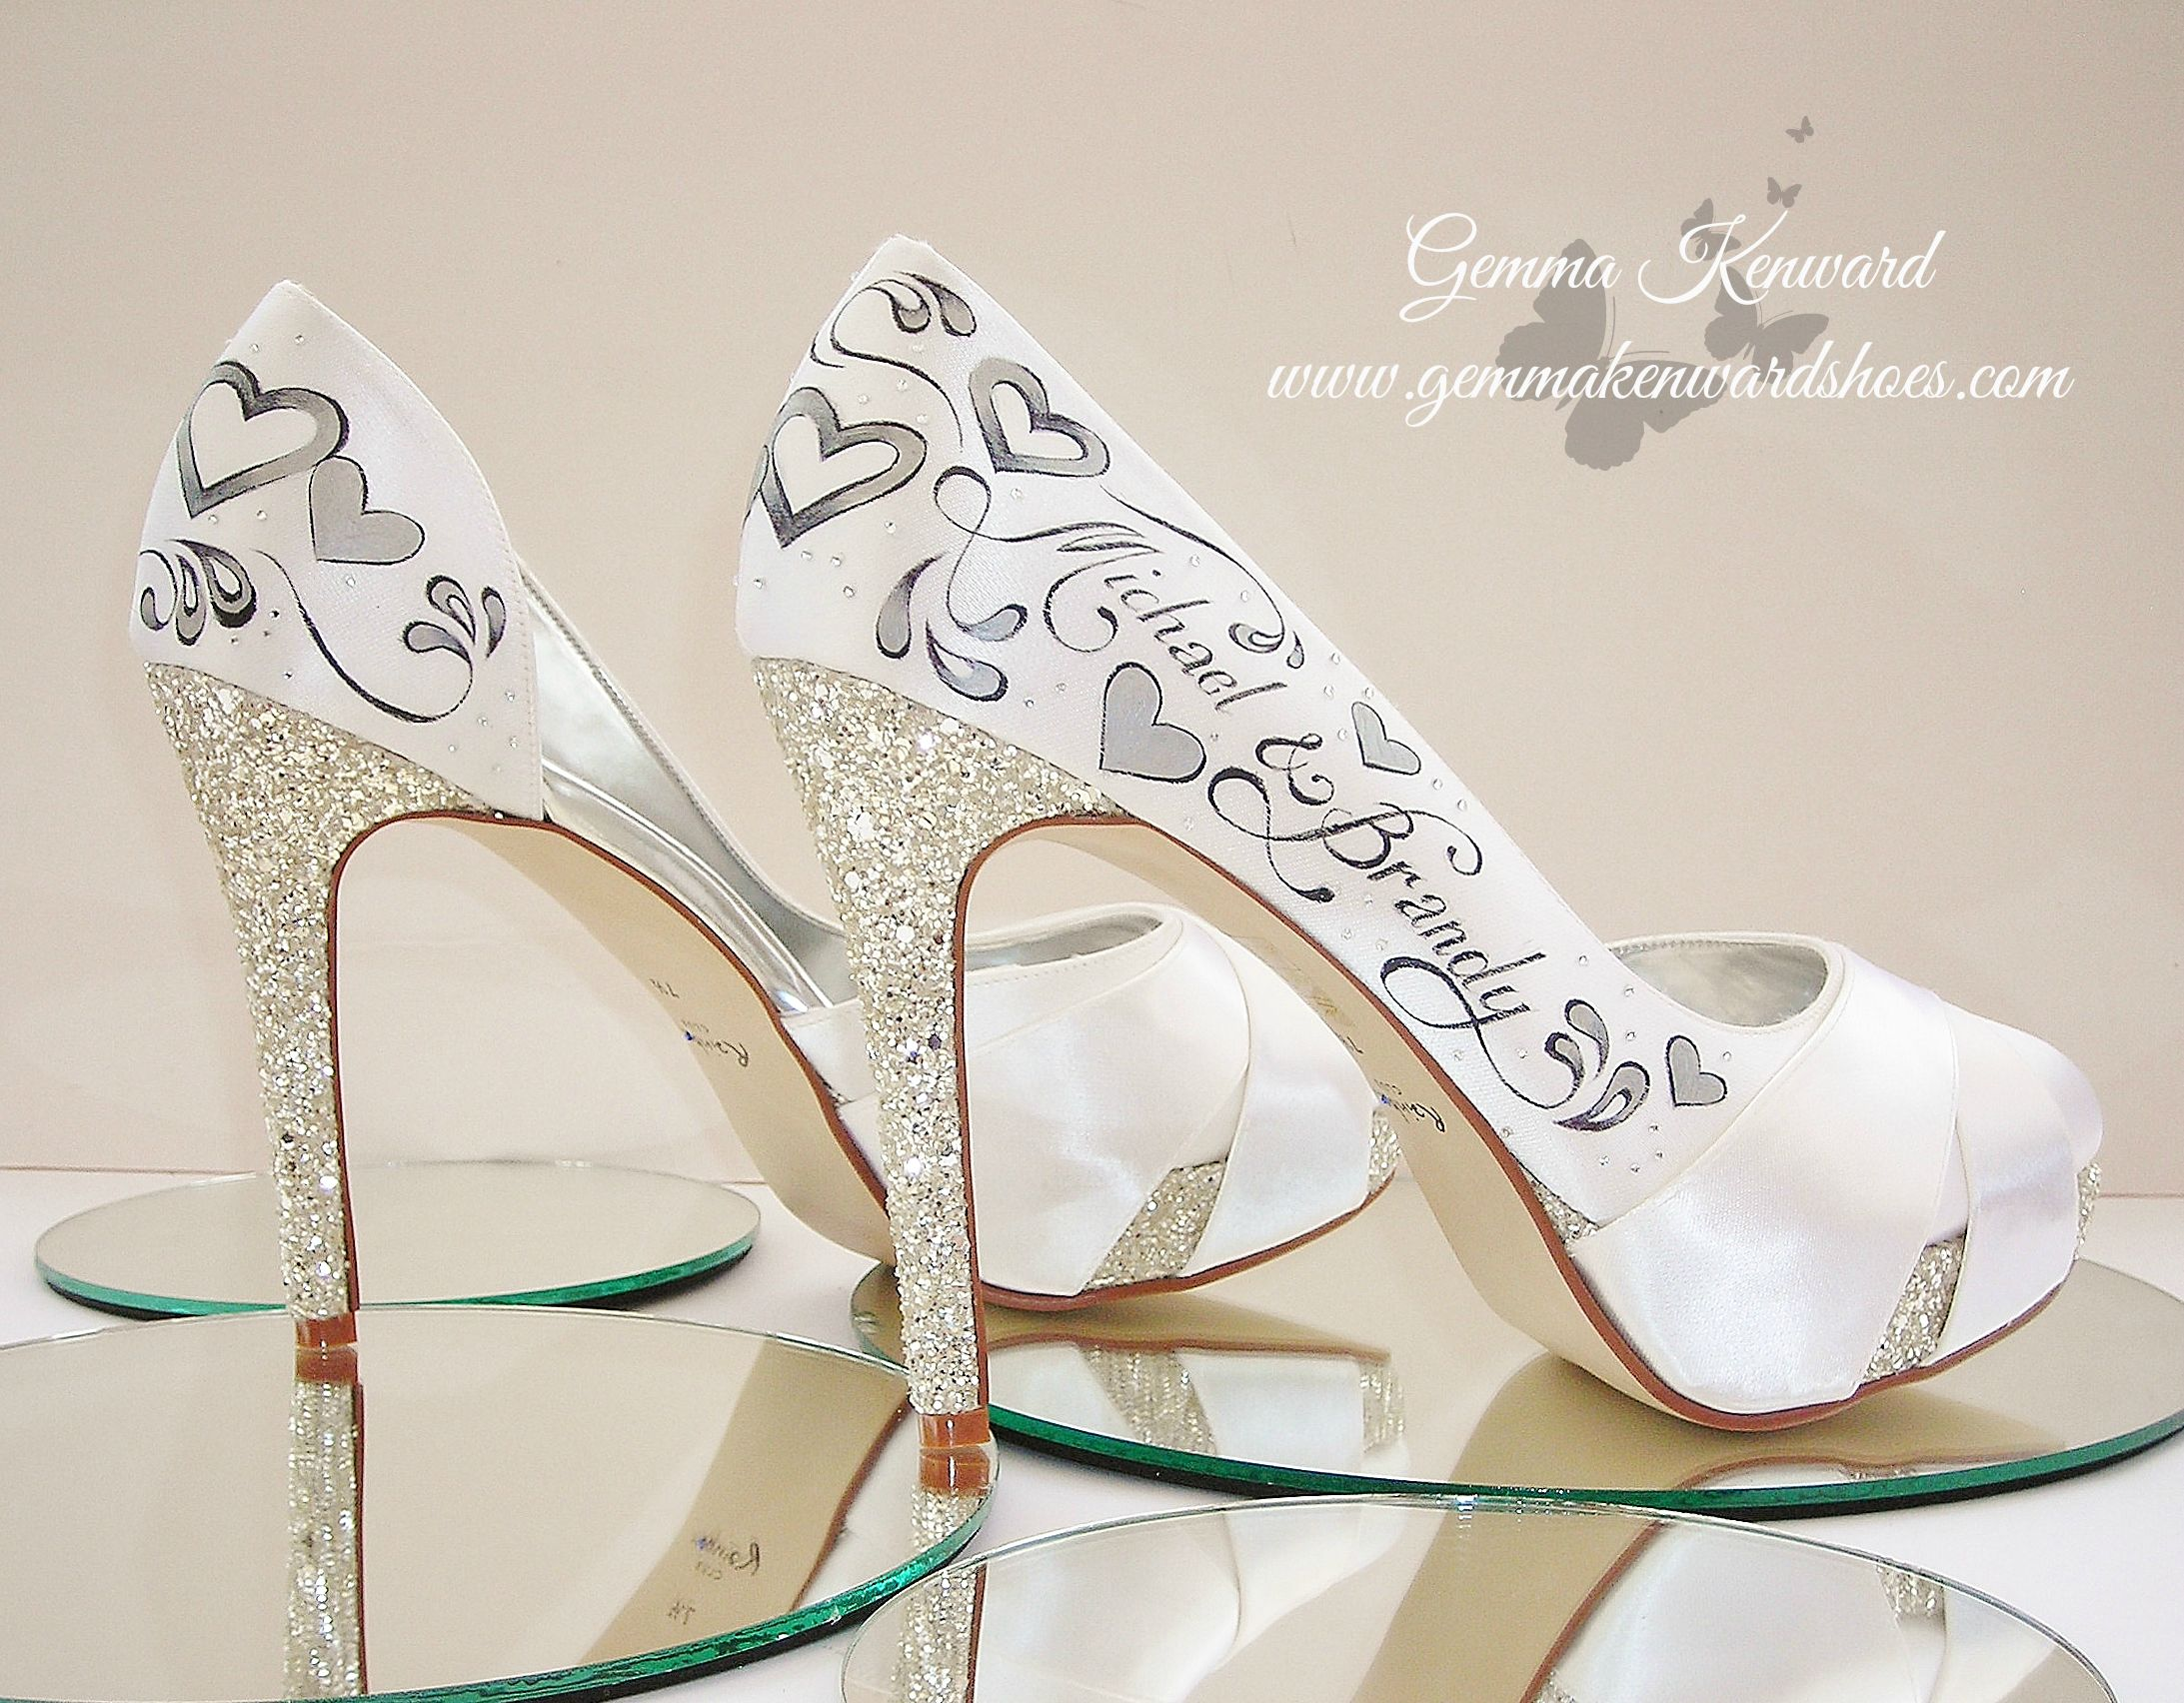 Personalised wedding shoes for a gorgeous bride in America who intends to play the shoe game with these very shoes!